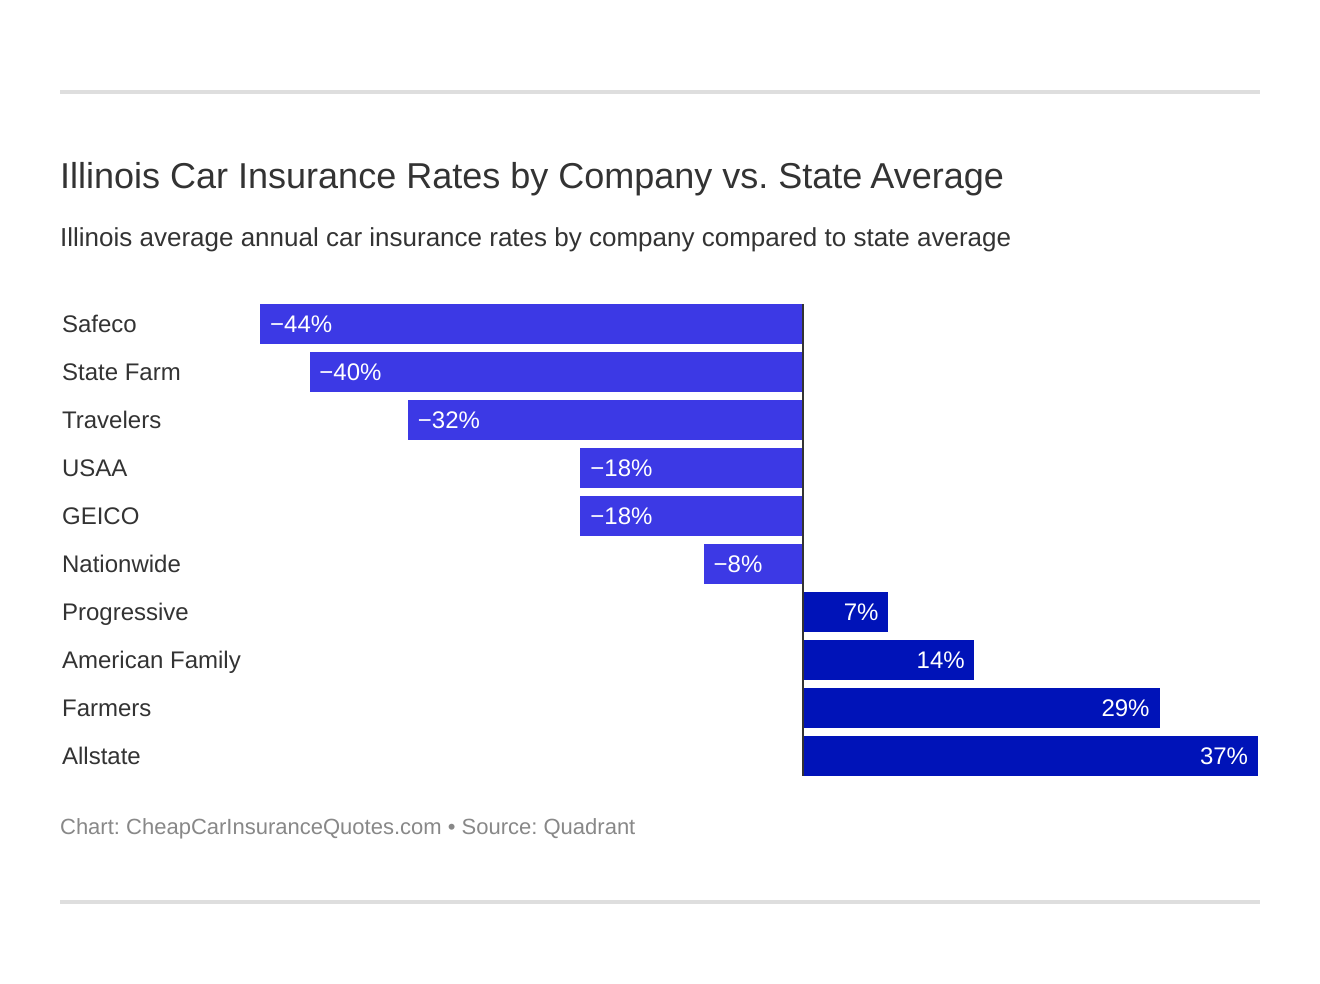 Illinois Car Insurance Rates by Company vs. State Average